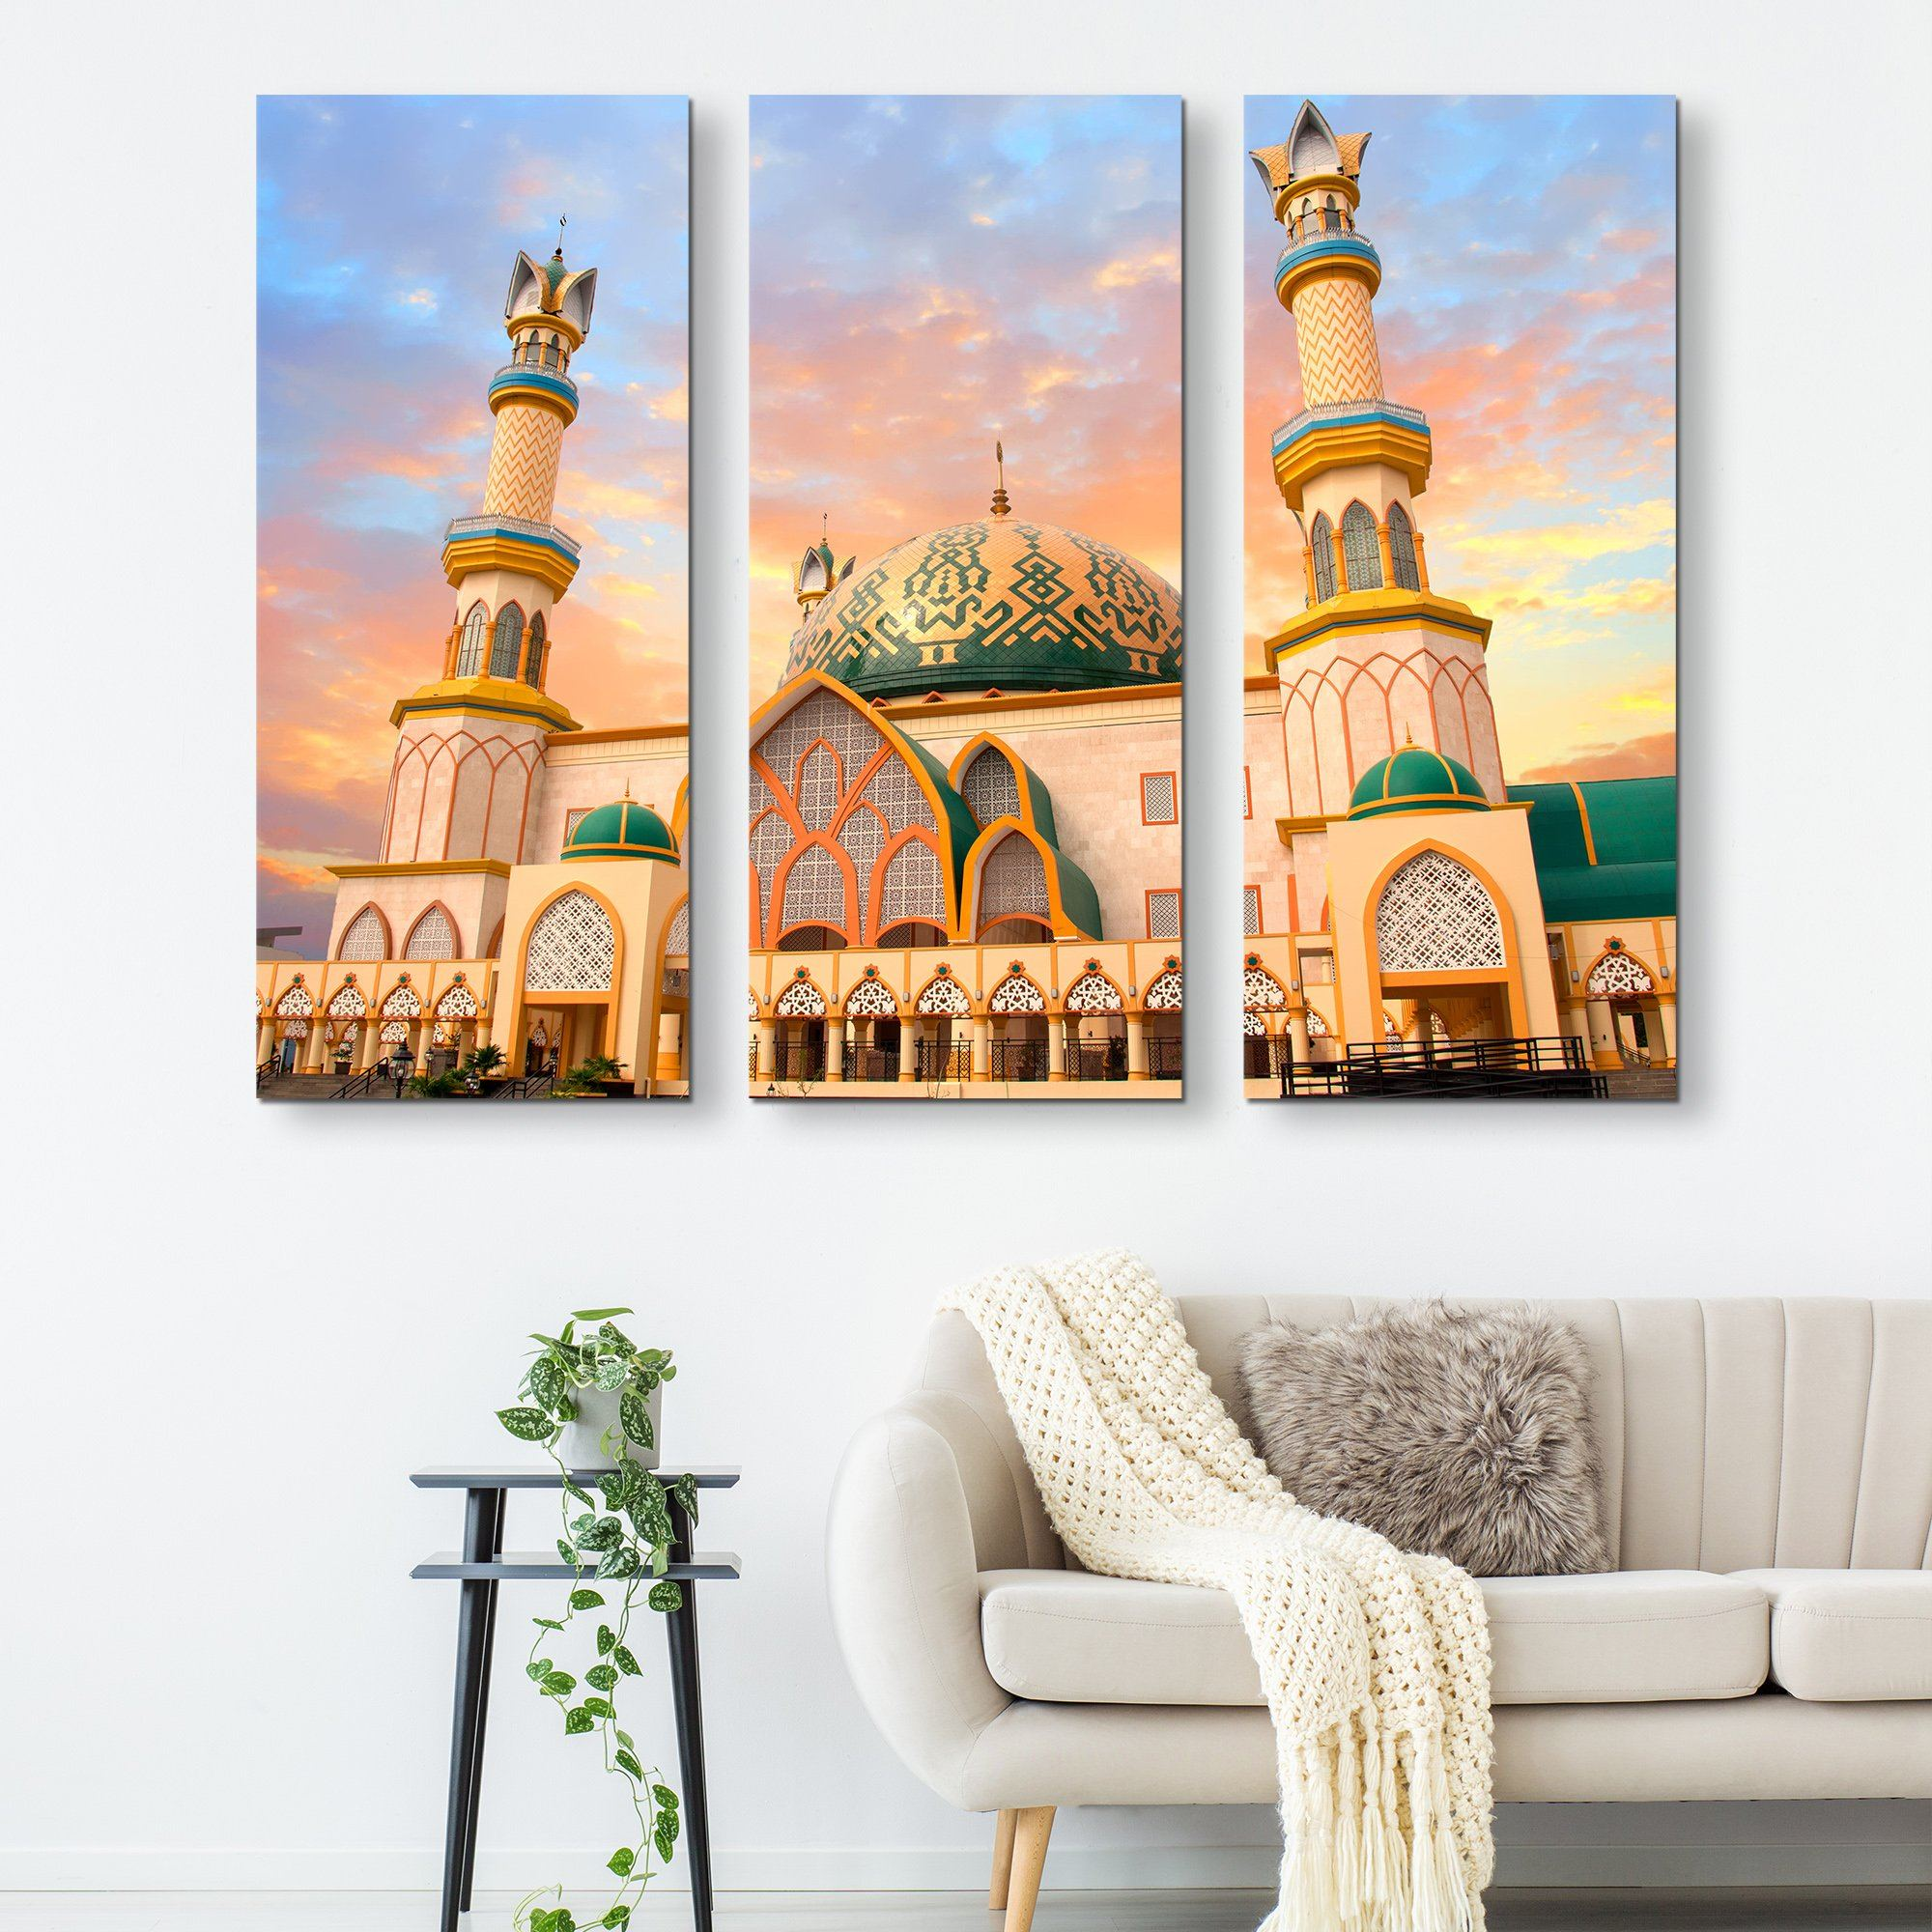 3 piece Indonesia Mosque wall art